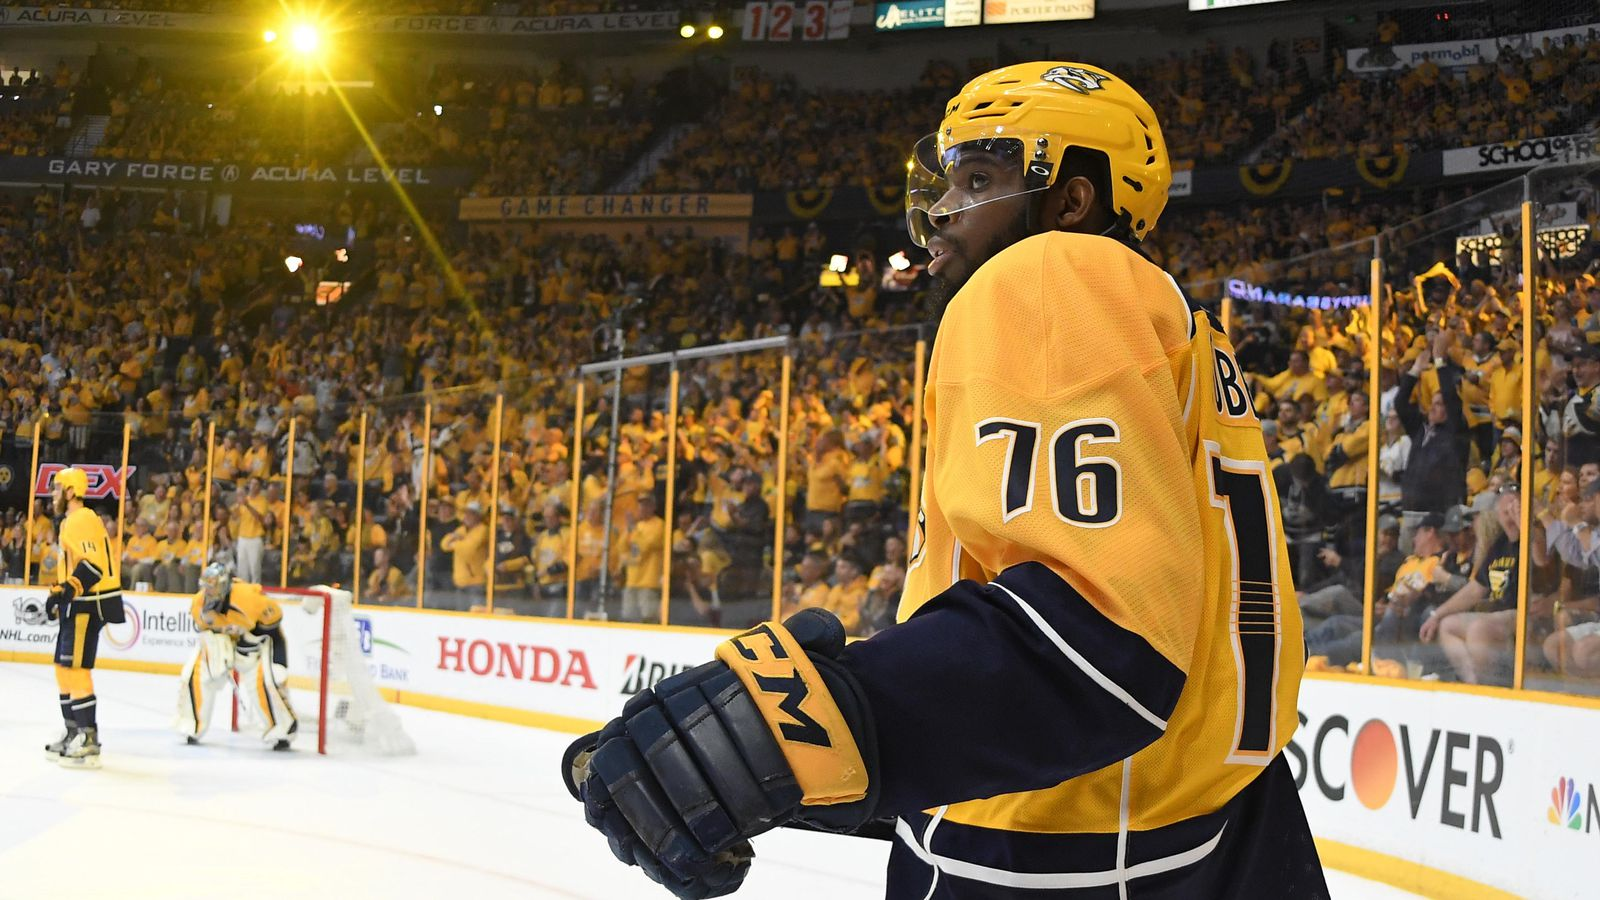 Predators vs. Penguins 2017: Nashville roars back into ...